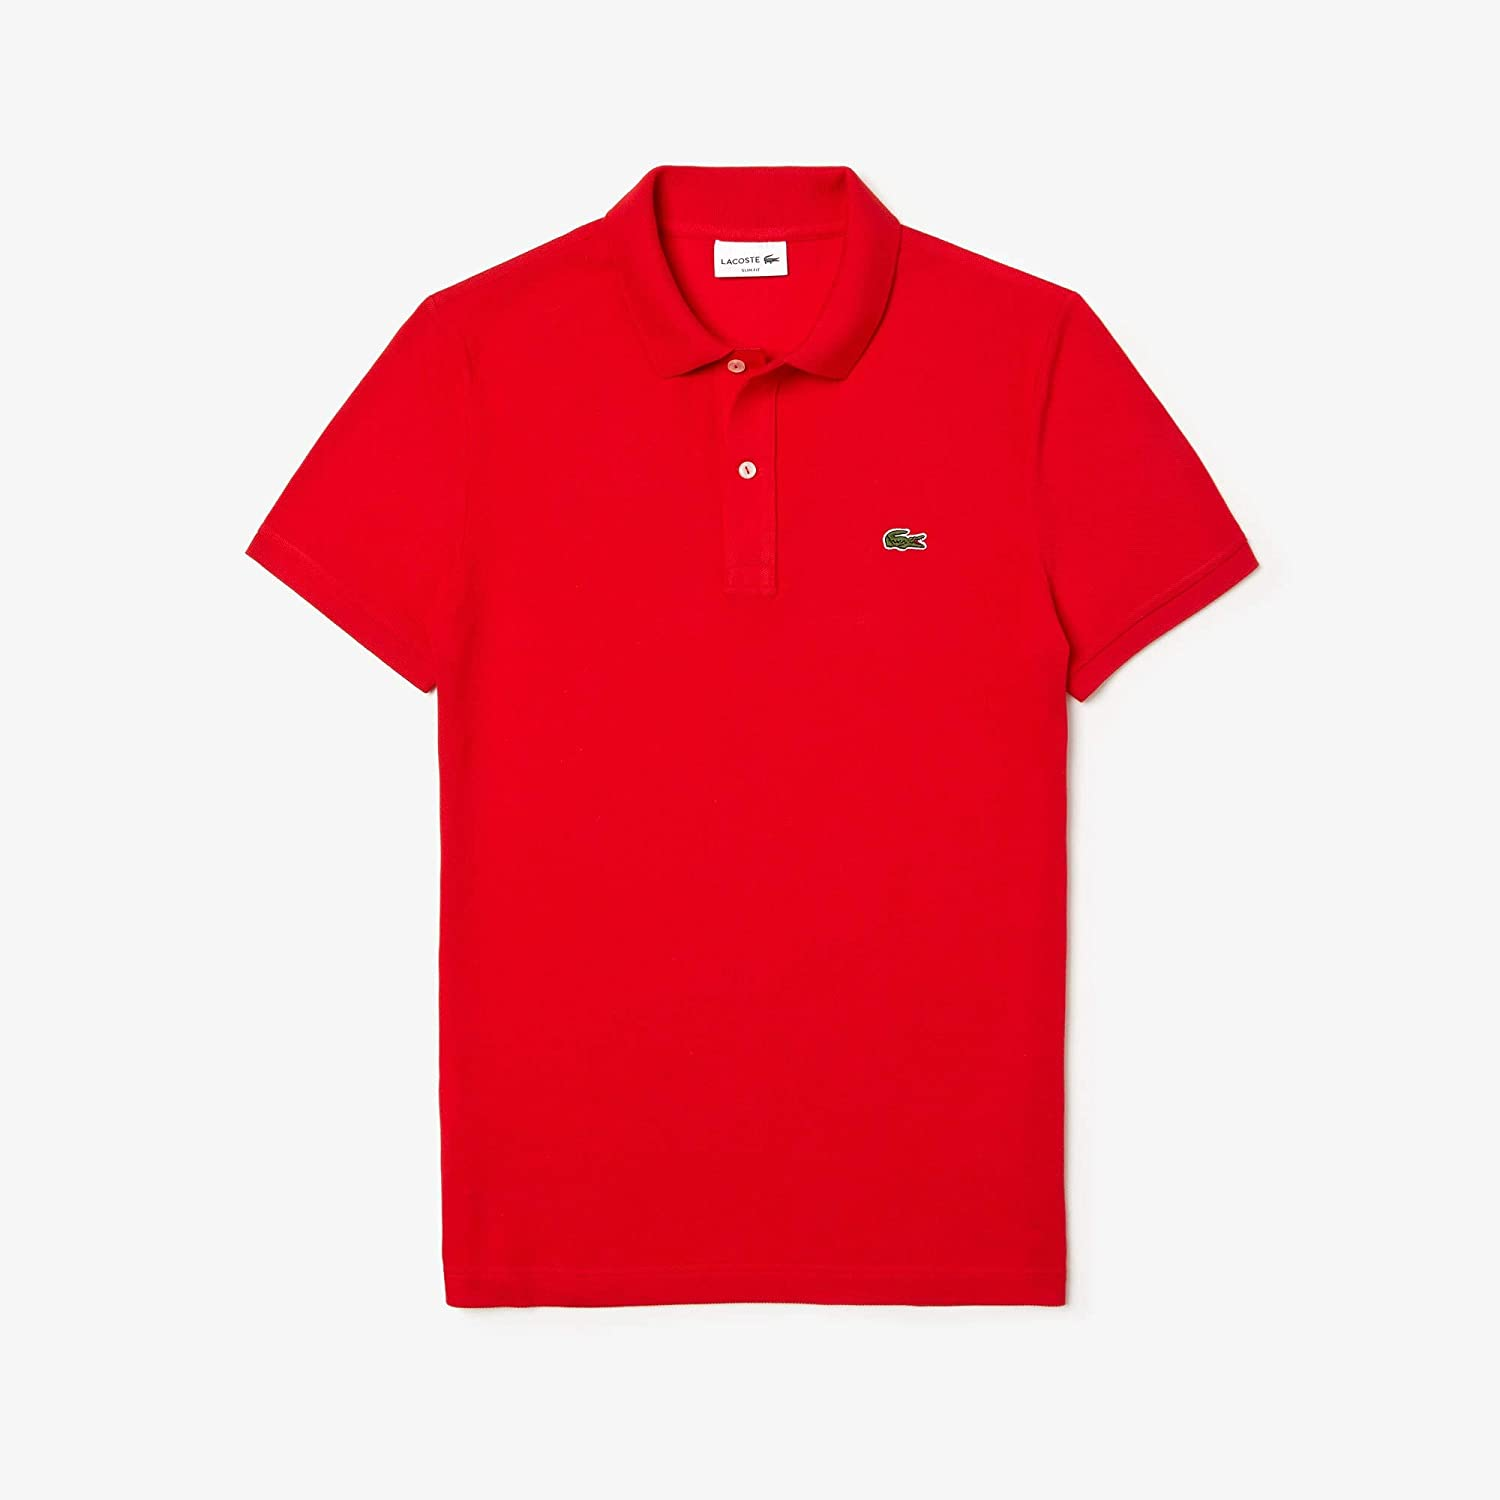 Rouge (Rouge 240) 6 (XL) Lacoste - PH4012 - Polo - Homme